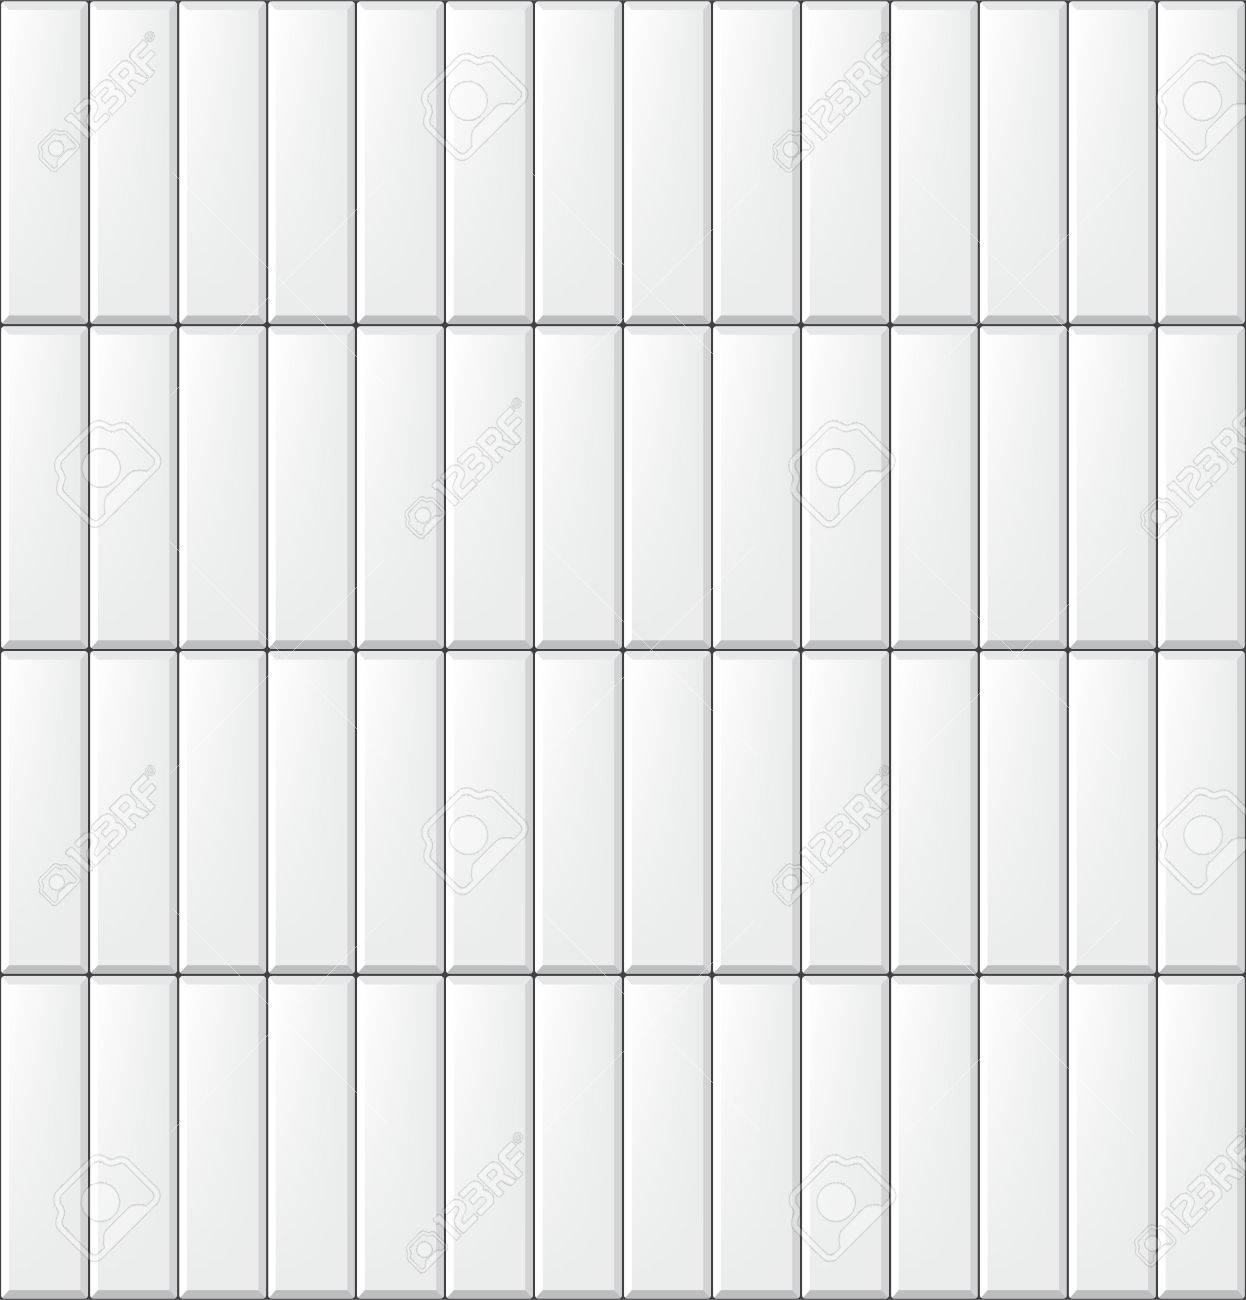 Seamless pattern with modern vertical rectangular white tiles. Realistic texture. Vector illustration. - 81388539